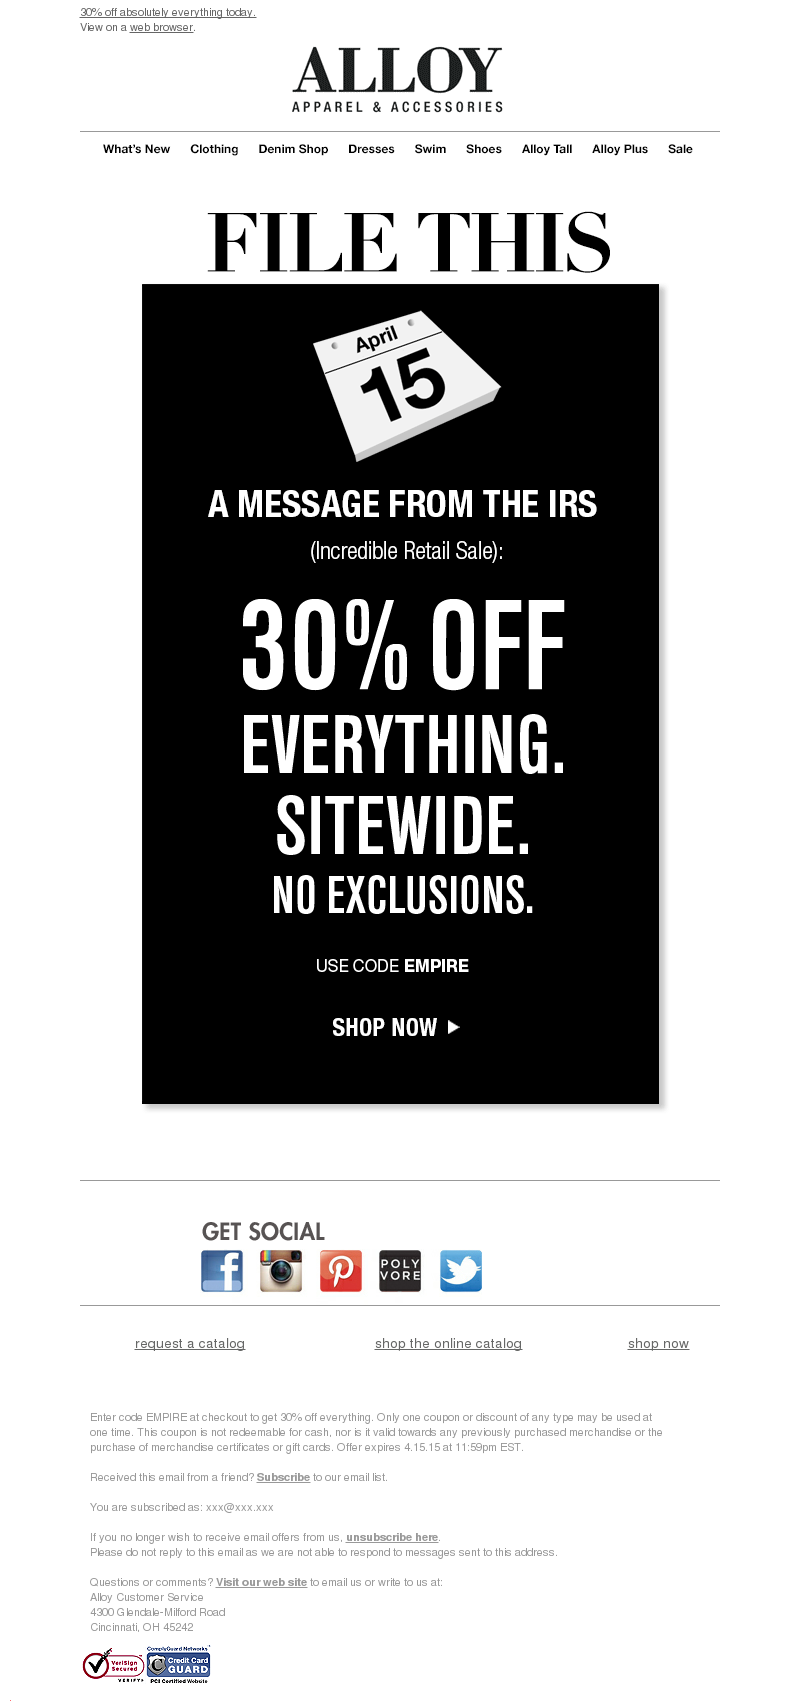 Alloy Apparel - A Message From The IRS (Incredible Retail Sale)...